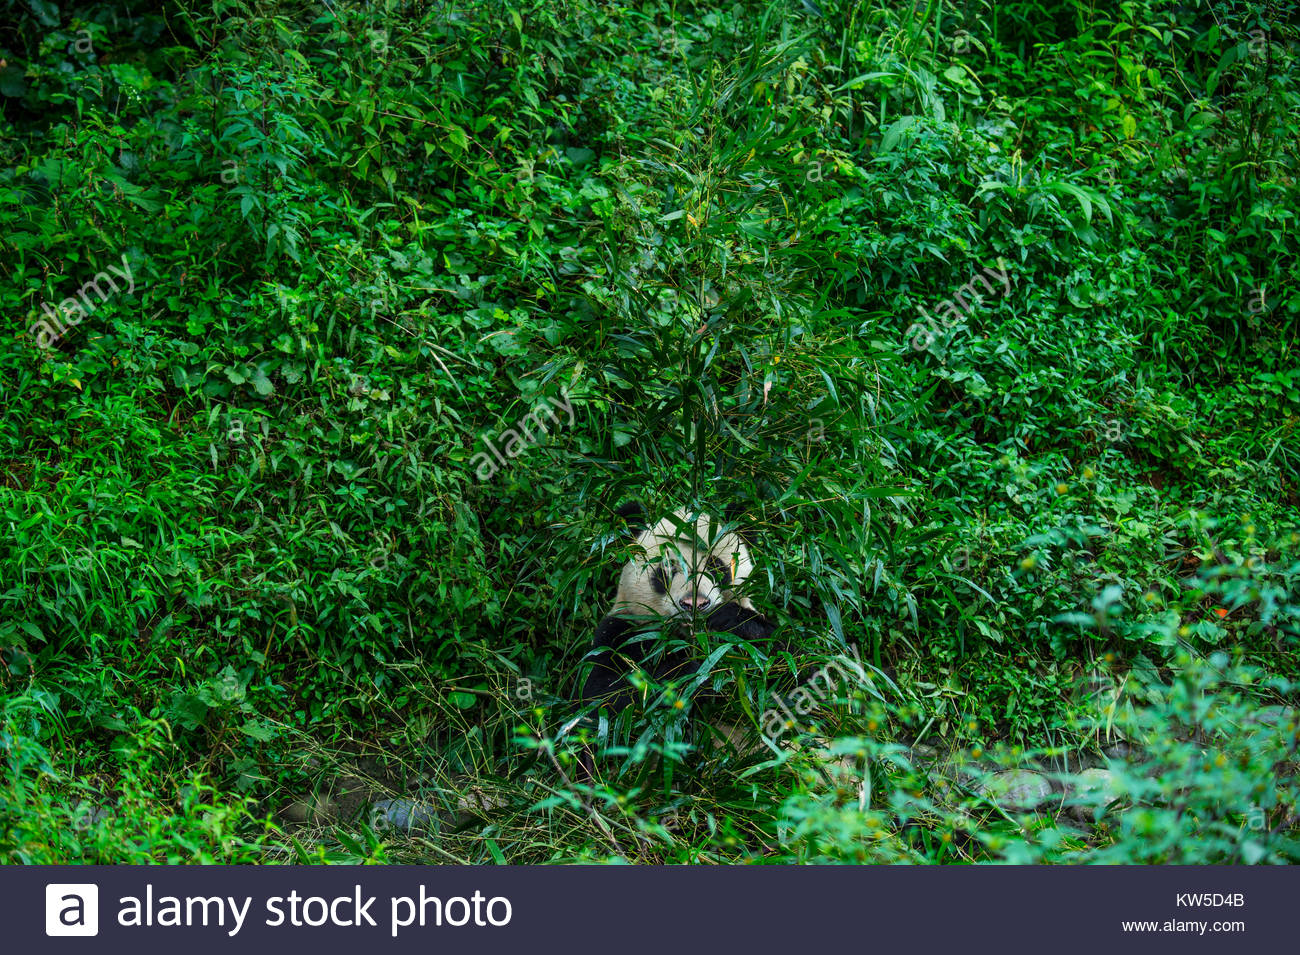 A giant panda spends much of the day surrounded by and munching on bamboo at Bifengxia Giant Panda Breeding and - Stock Image